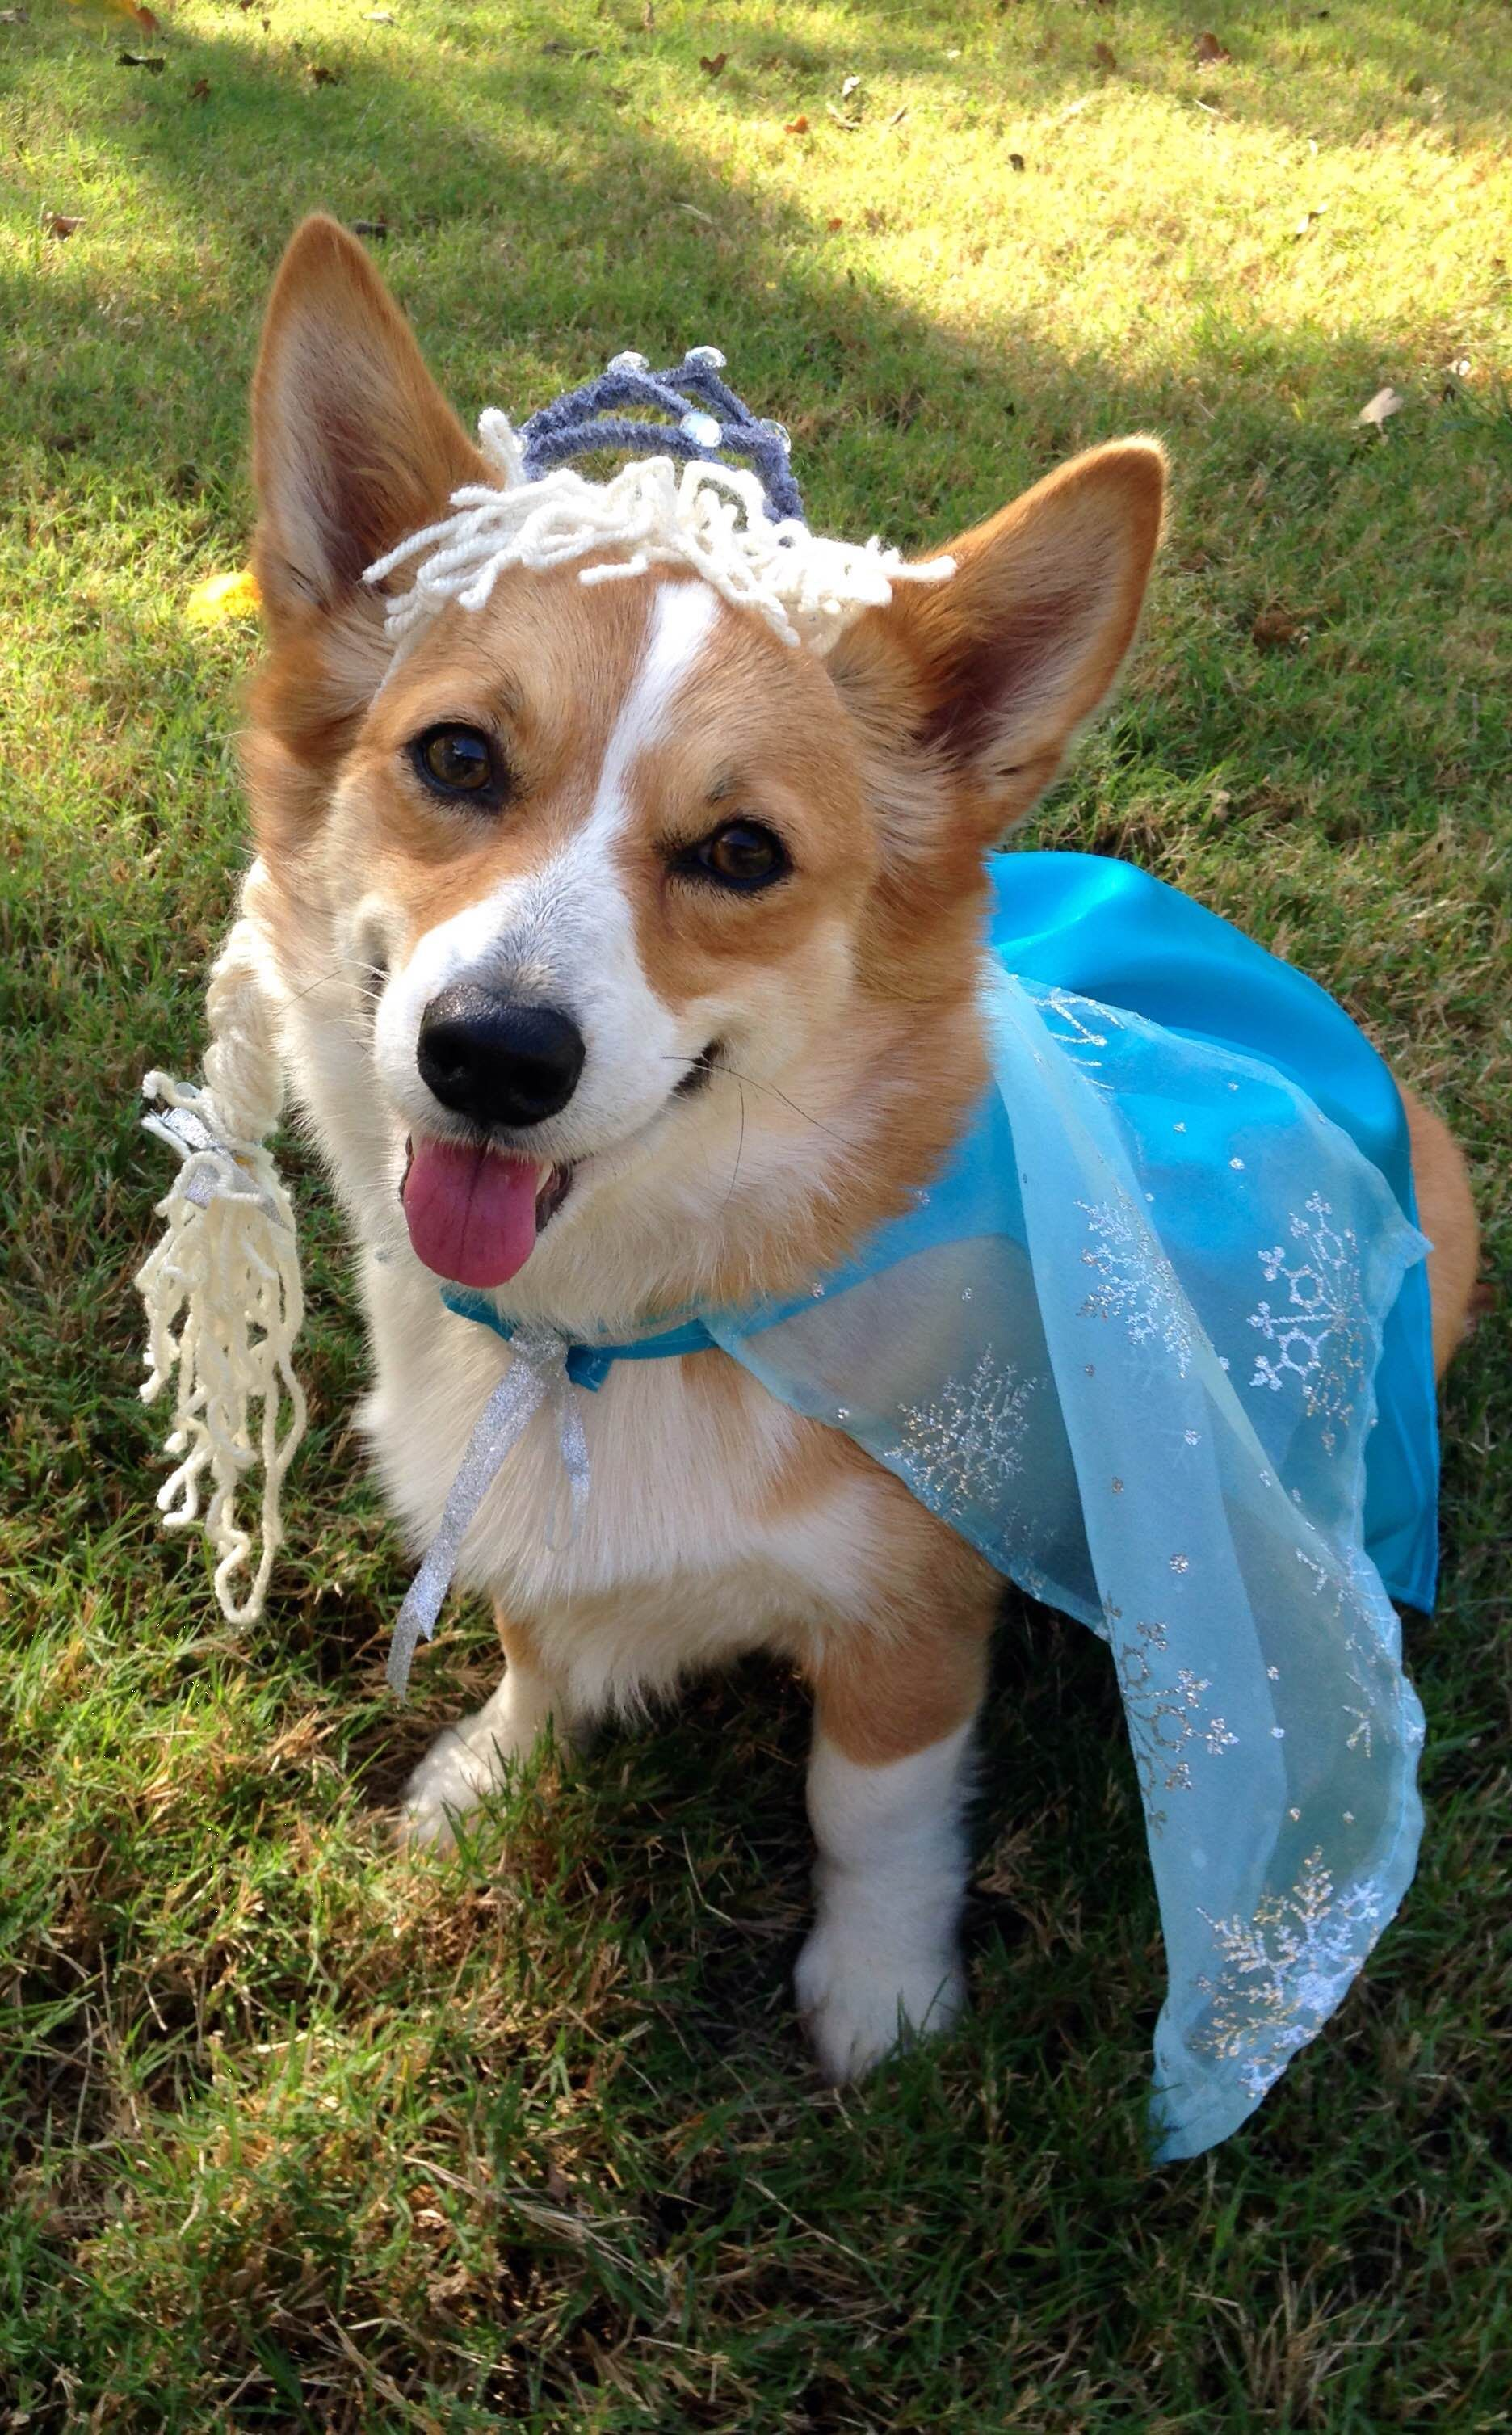 Our Frozen Corgi Corgi Corgi Dog Cute Little Animals